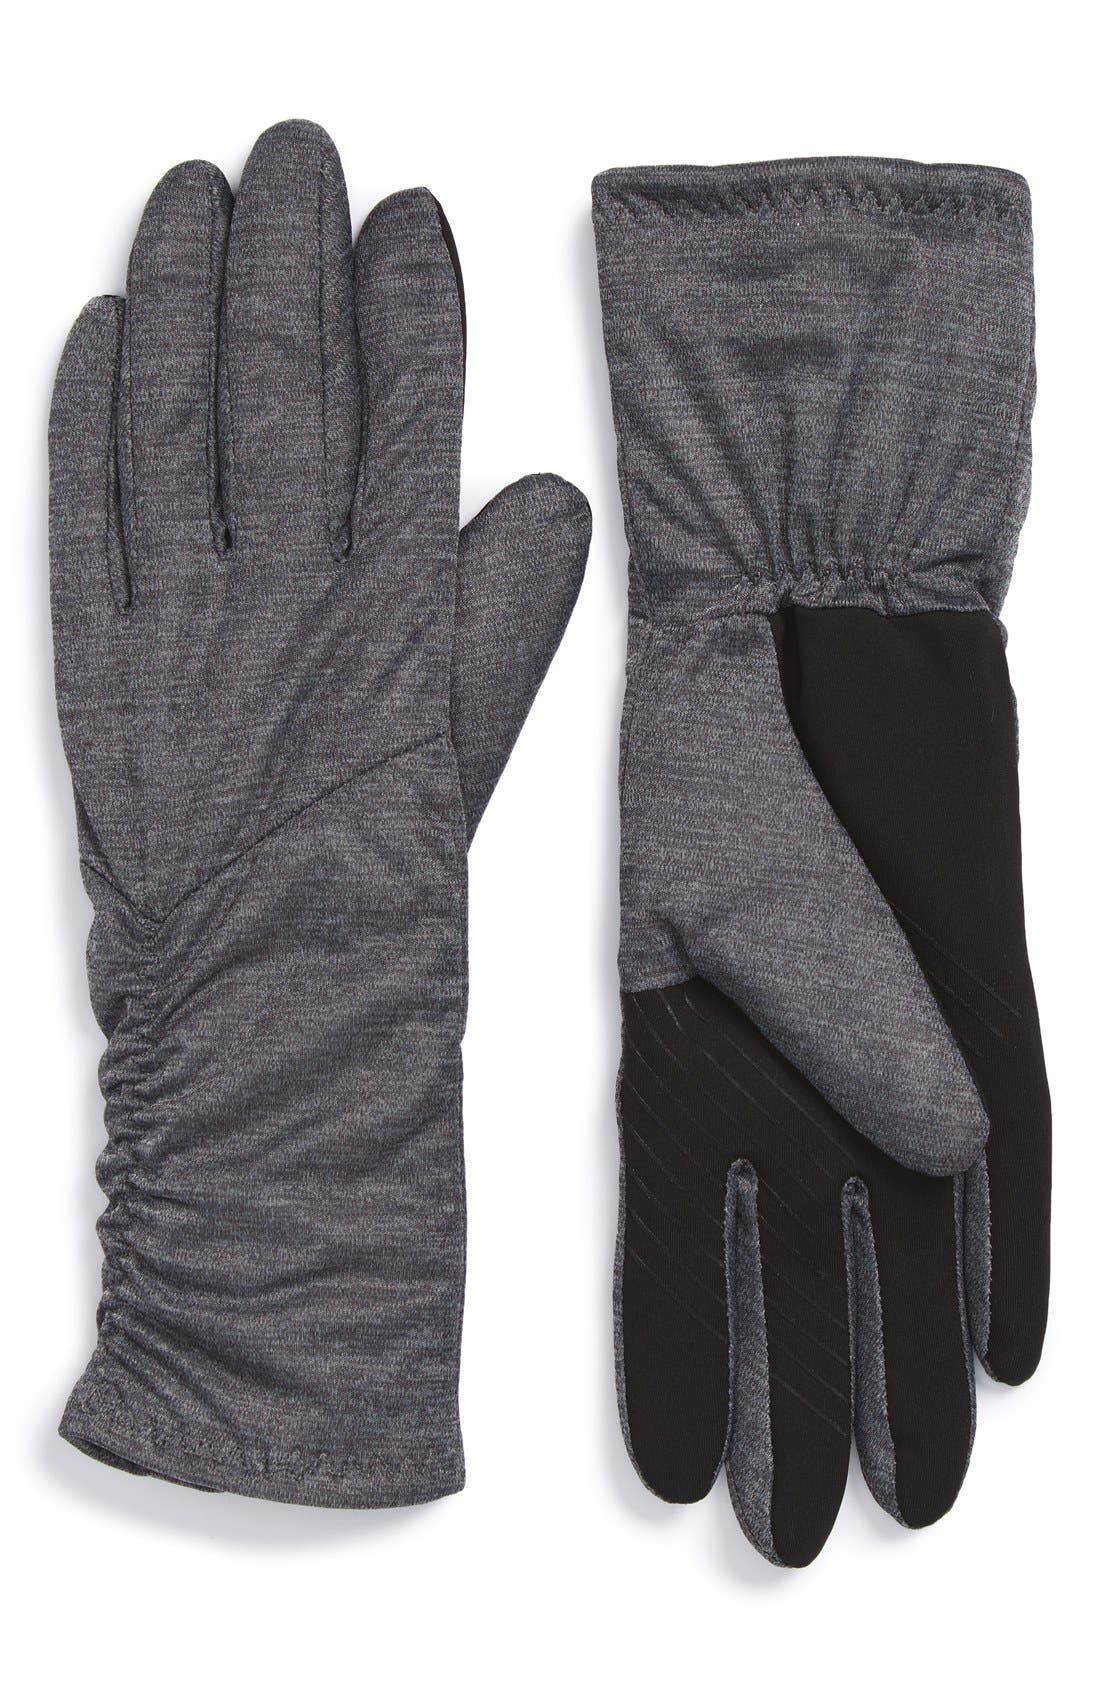 Alternate Image 1 Selected - UR Touchscreen Compatible Gloves